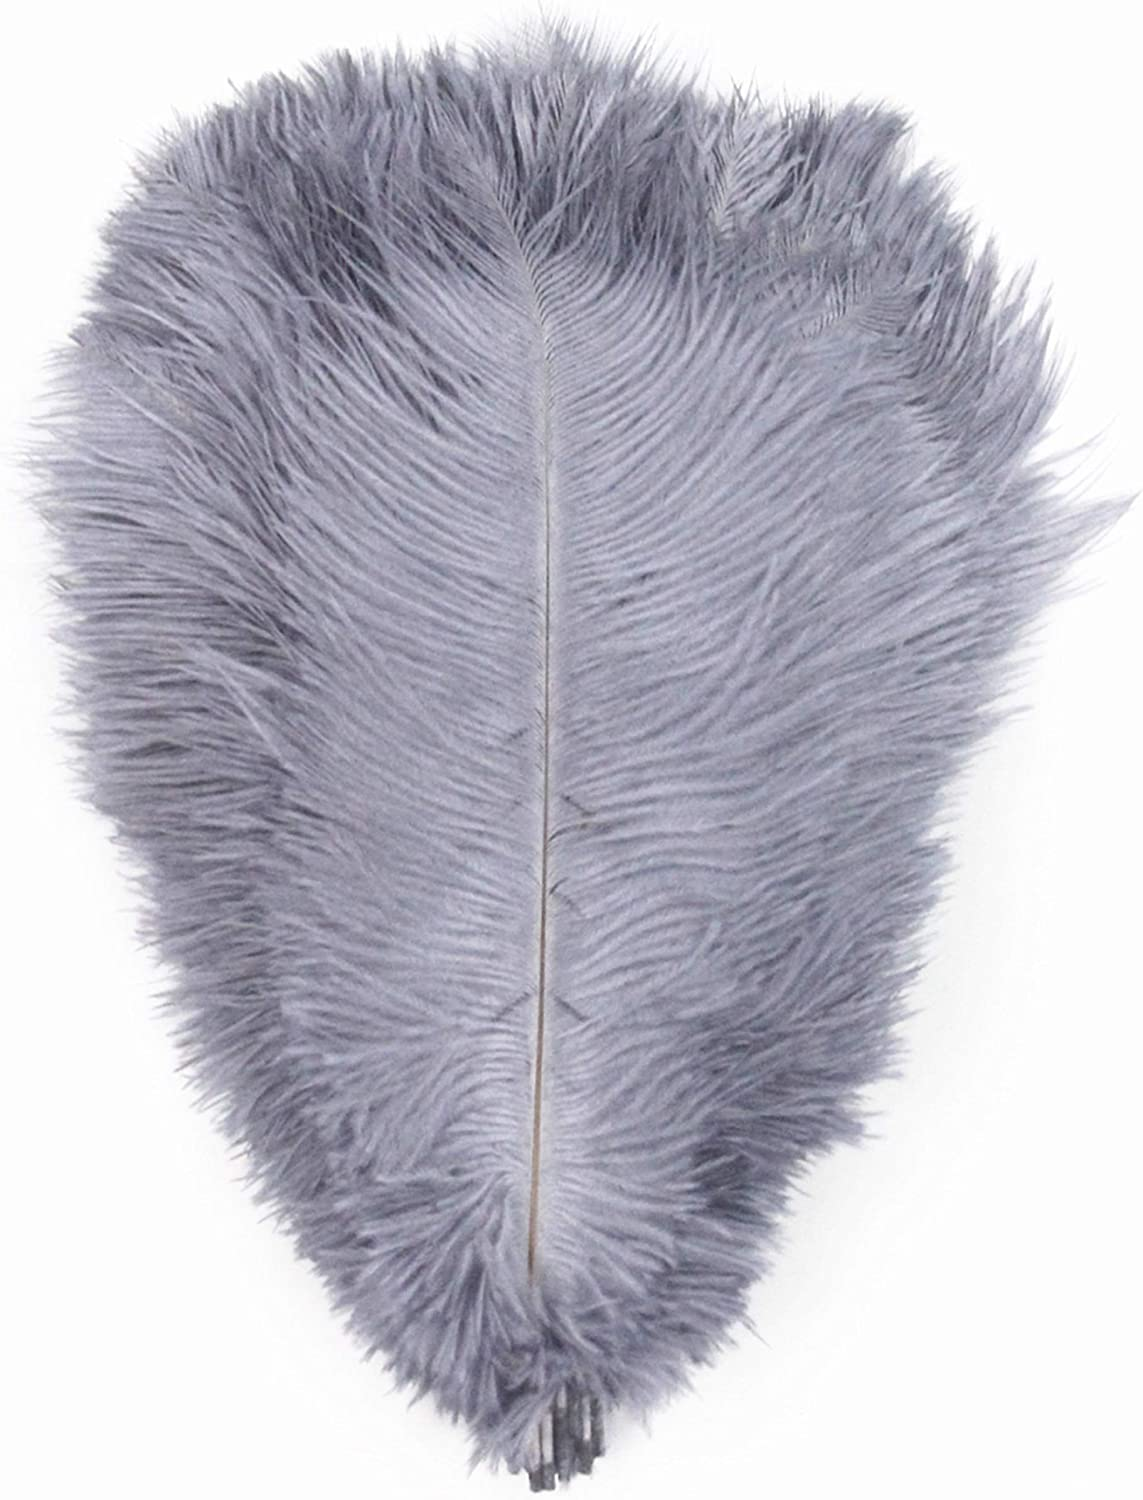 decorations costumes PANAX Ostrich Feathers 20 pieces 25-30cm//10-12 Inches length 13 colors variants Ideal for Crafting Weddings White Carnival